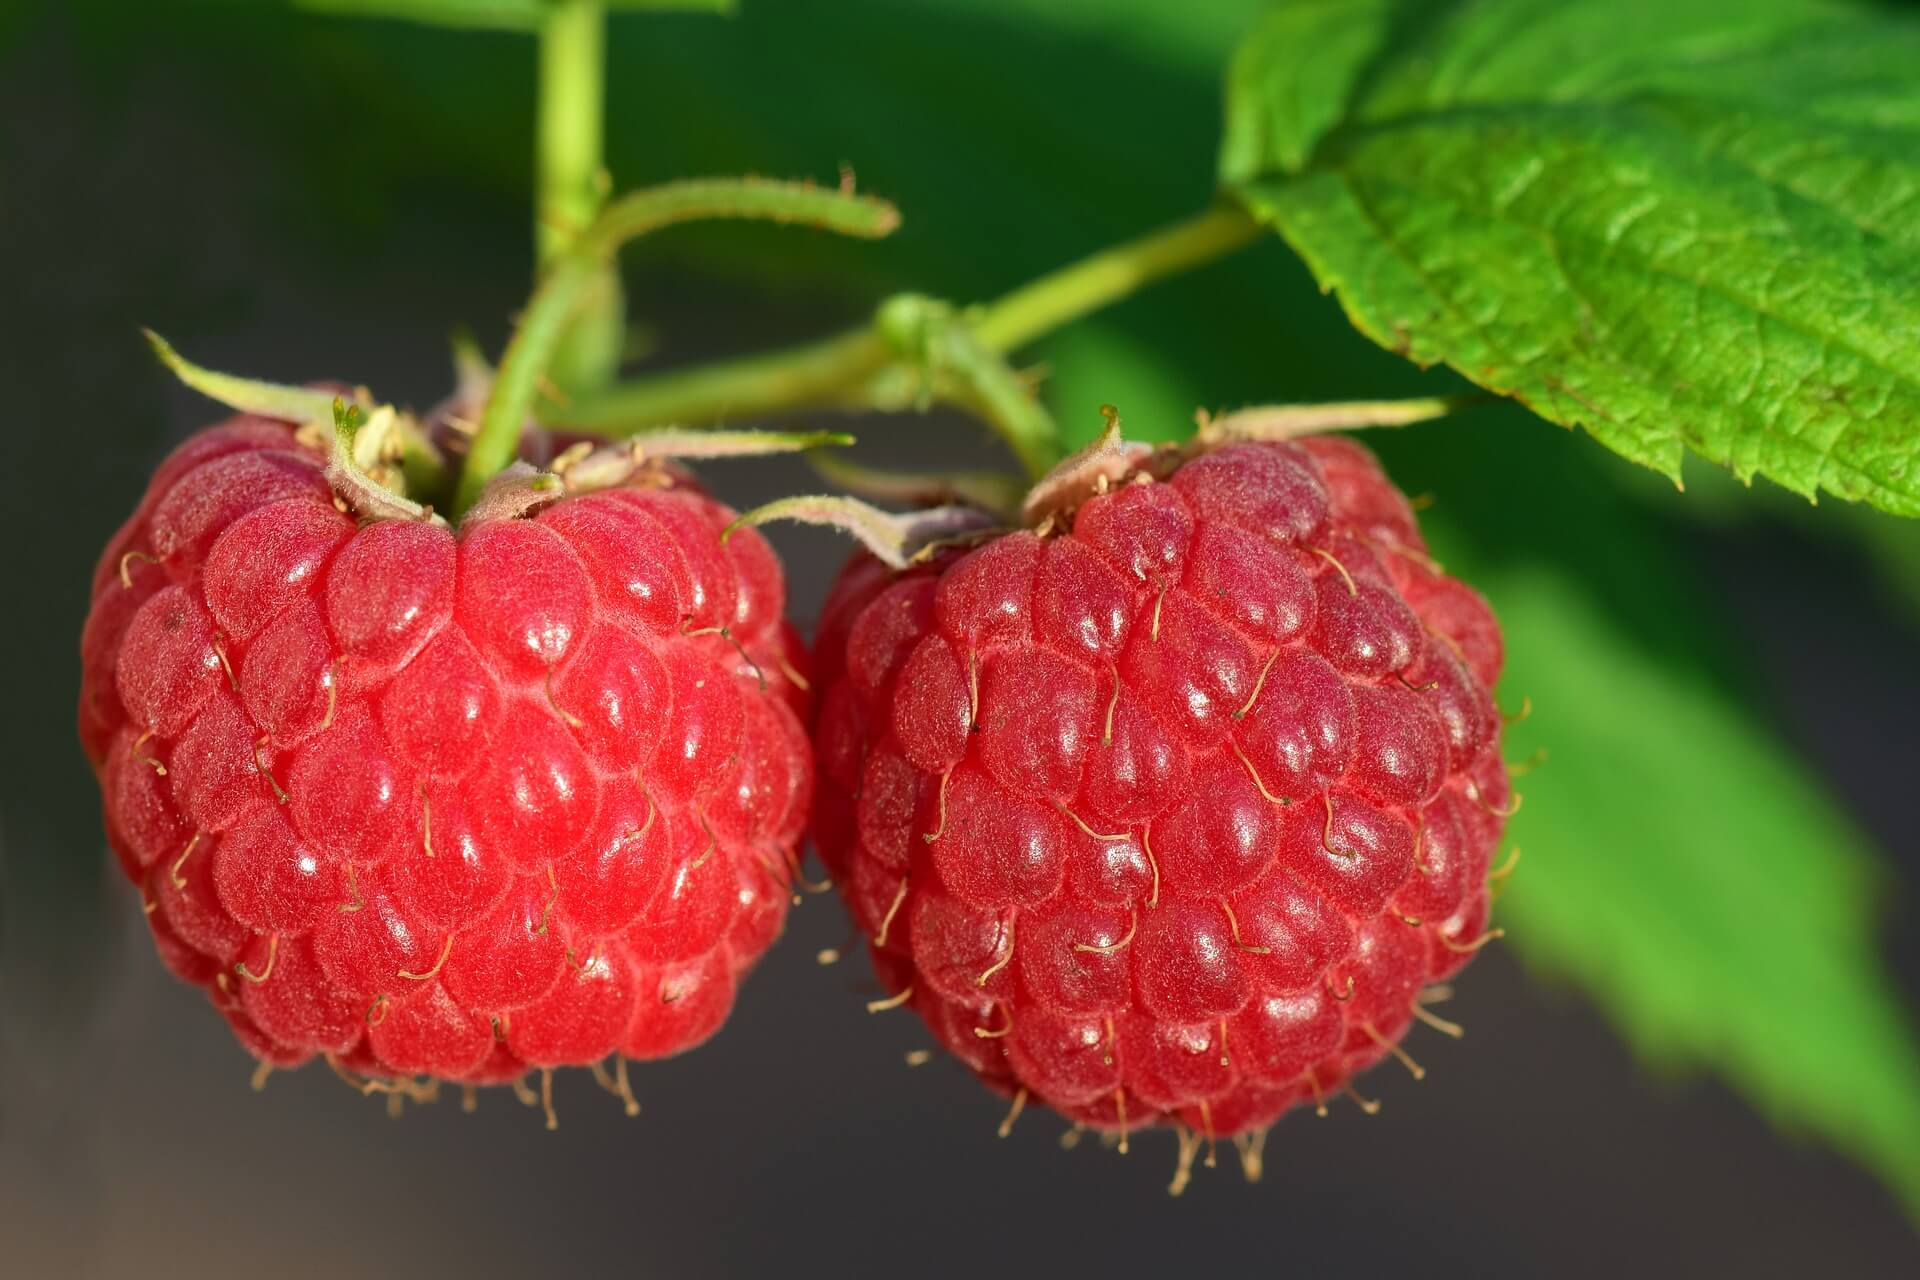 Natural Aroma of Raspberry Culinary Pastry